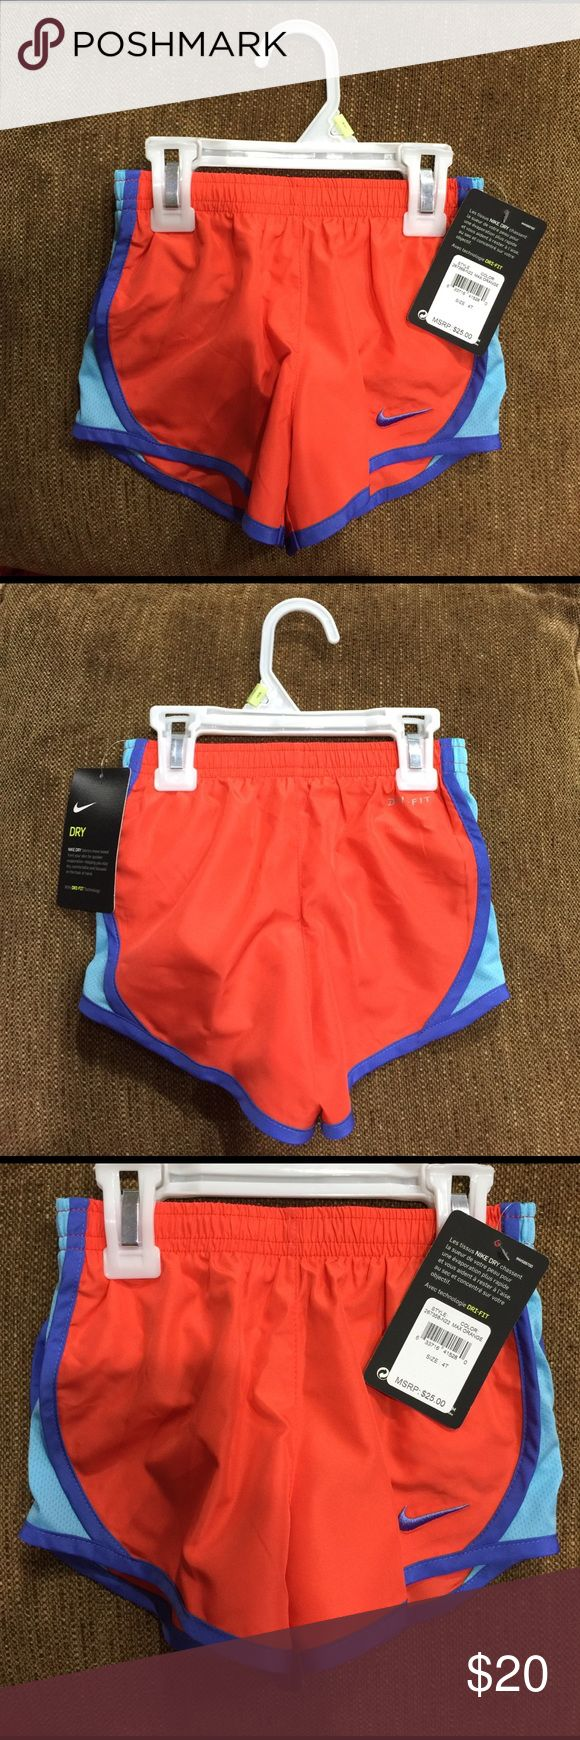 😳😍🤑 ( NWT ) NIKE DRI - FIT SHORTS 😳😍🤑 🤓😴😘 ( NWT ) BRAND NEW WITH TAGS NIKE DRI - FIT SHORTS ❤️ SOMEONE WILL BE ❤️ TO WEAR IT🤓😴😘 NIKE DRI - FIT Bottoms Shorts